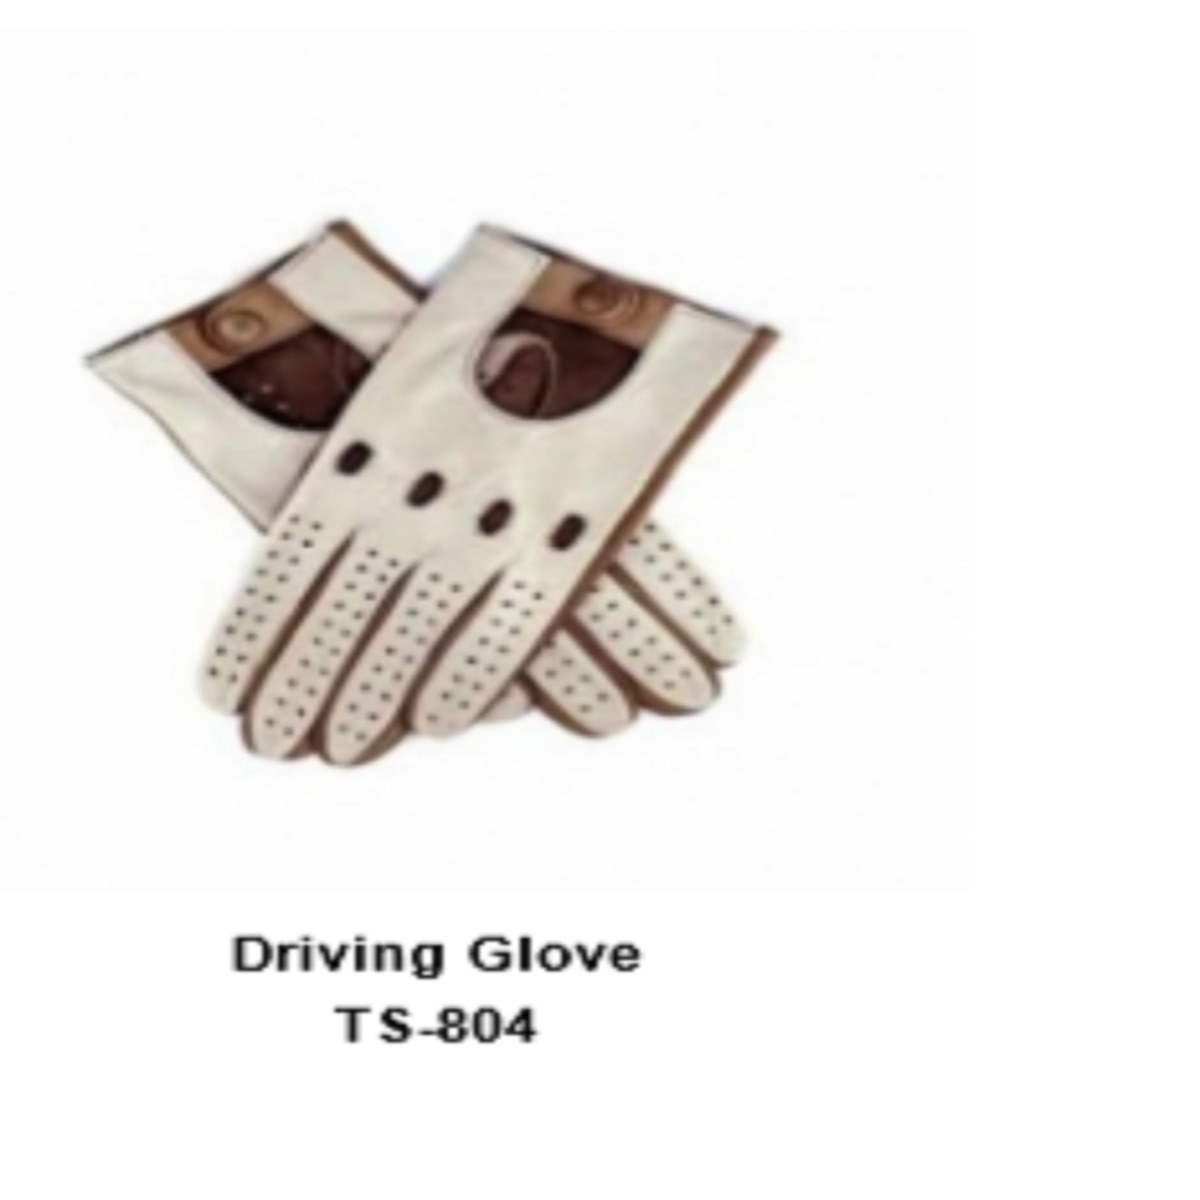 Leather Men's Fashion Driving Gloves Model No. TSI 804